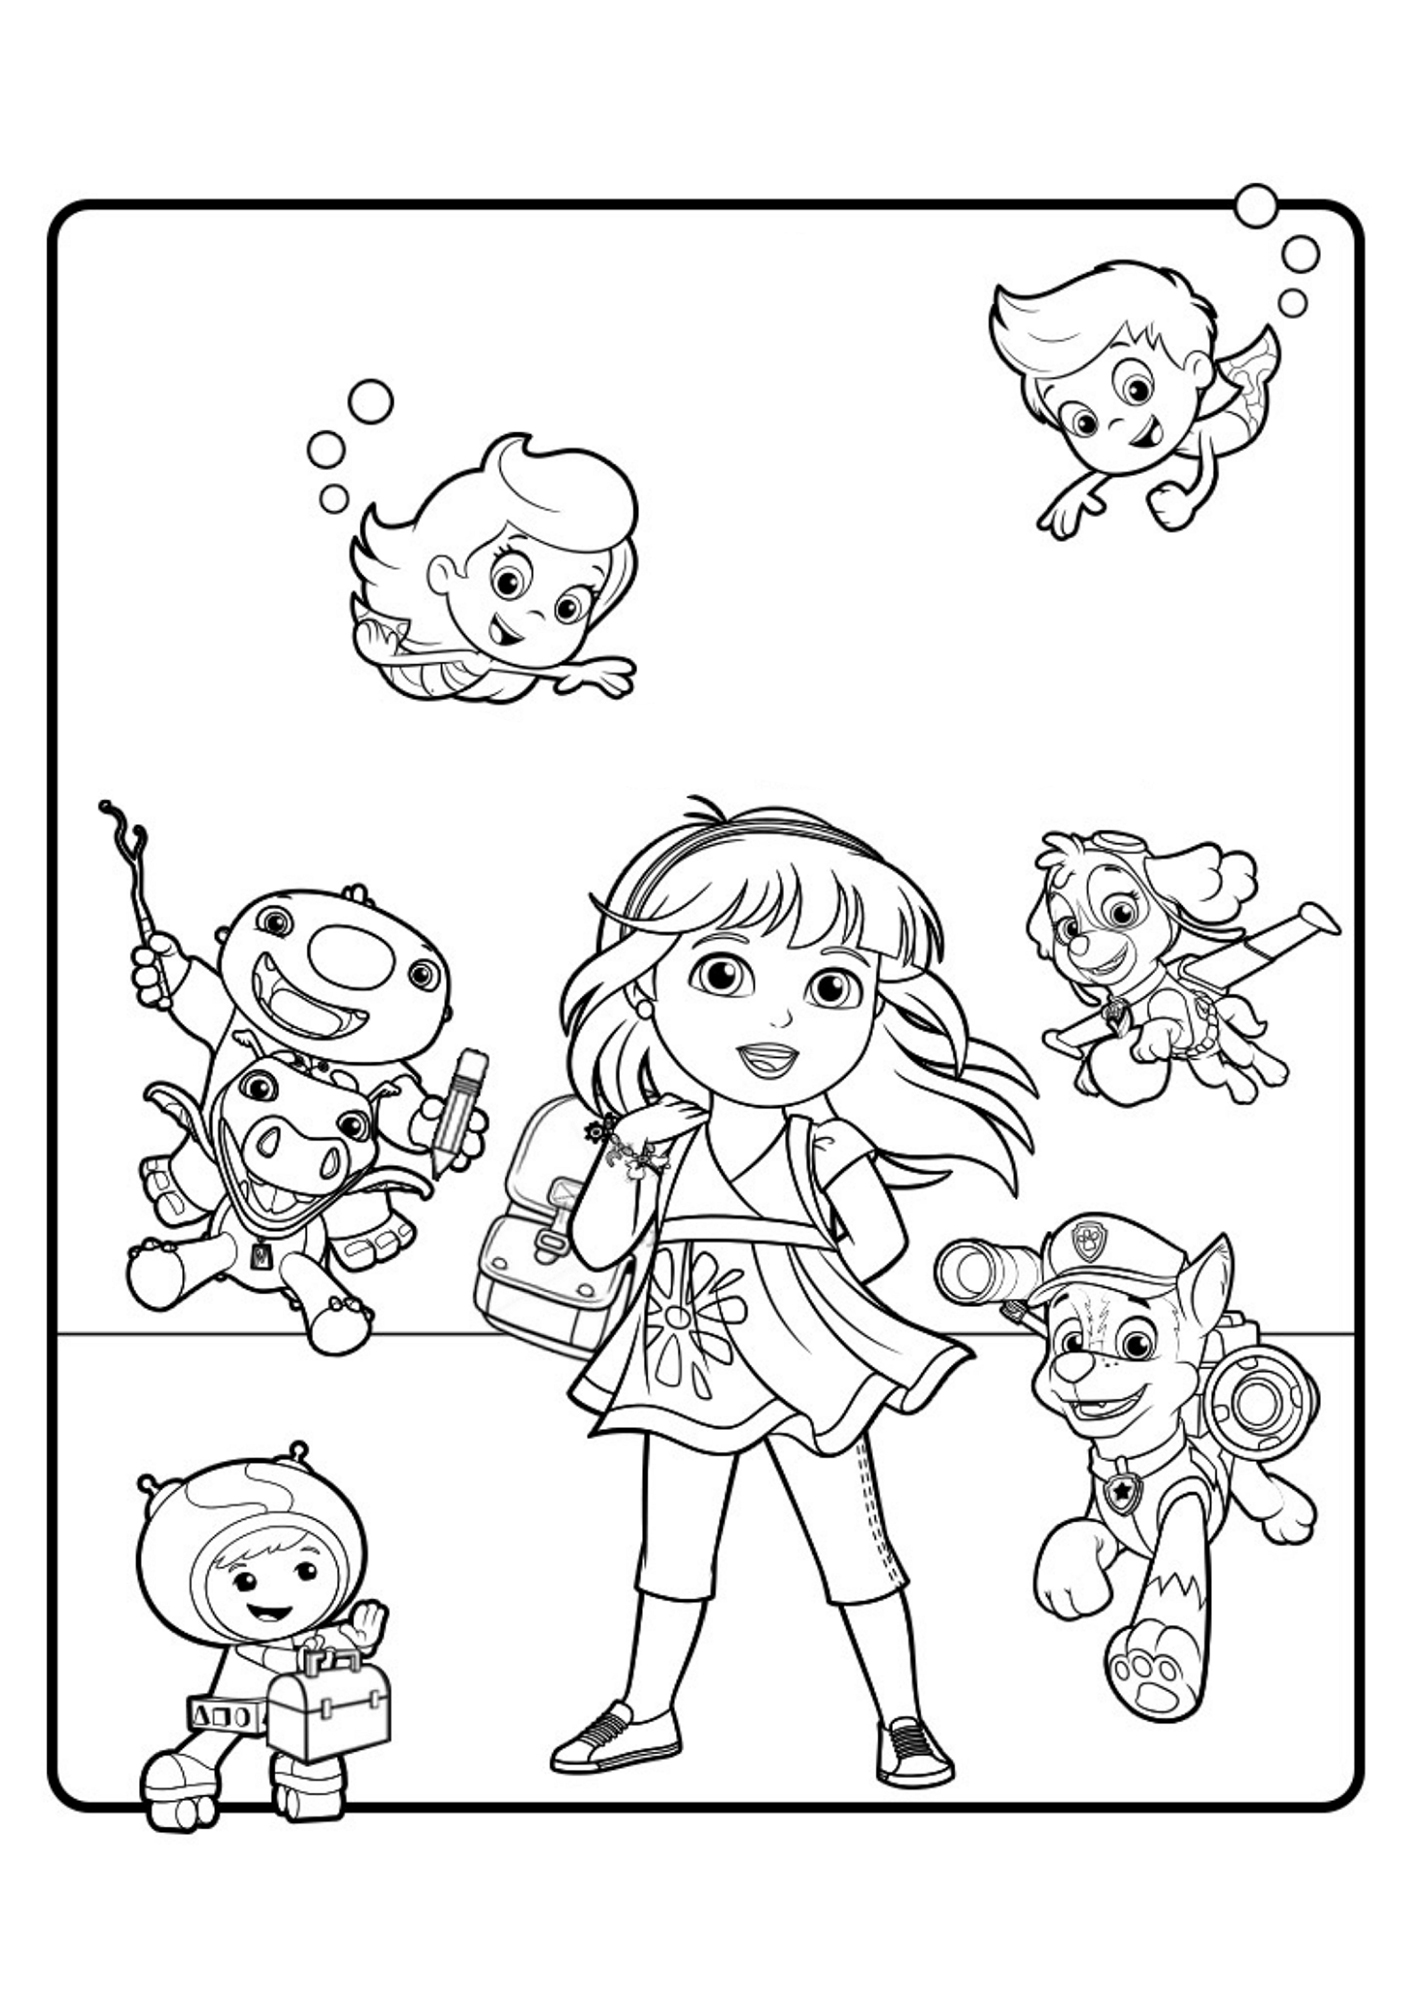 coloring pages dora and friends dora and friends coloring pages to download and print for free and coloring friends dora pages